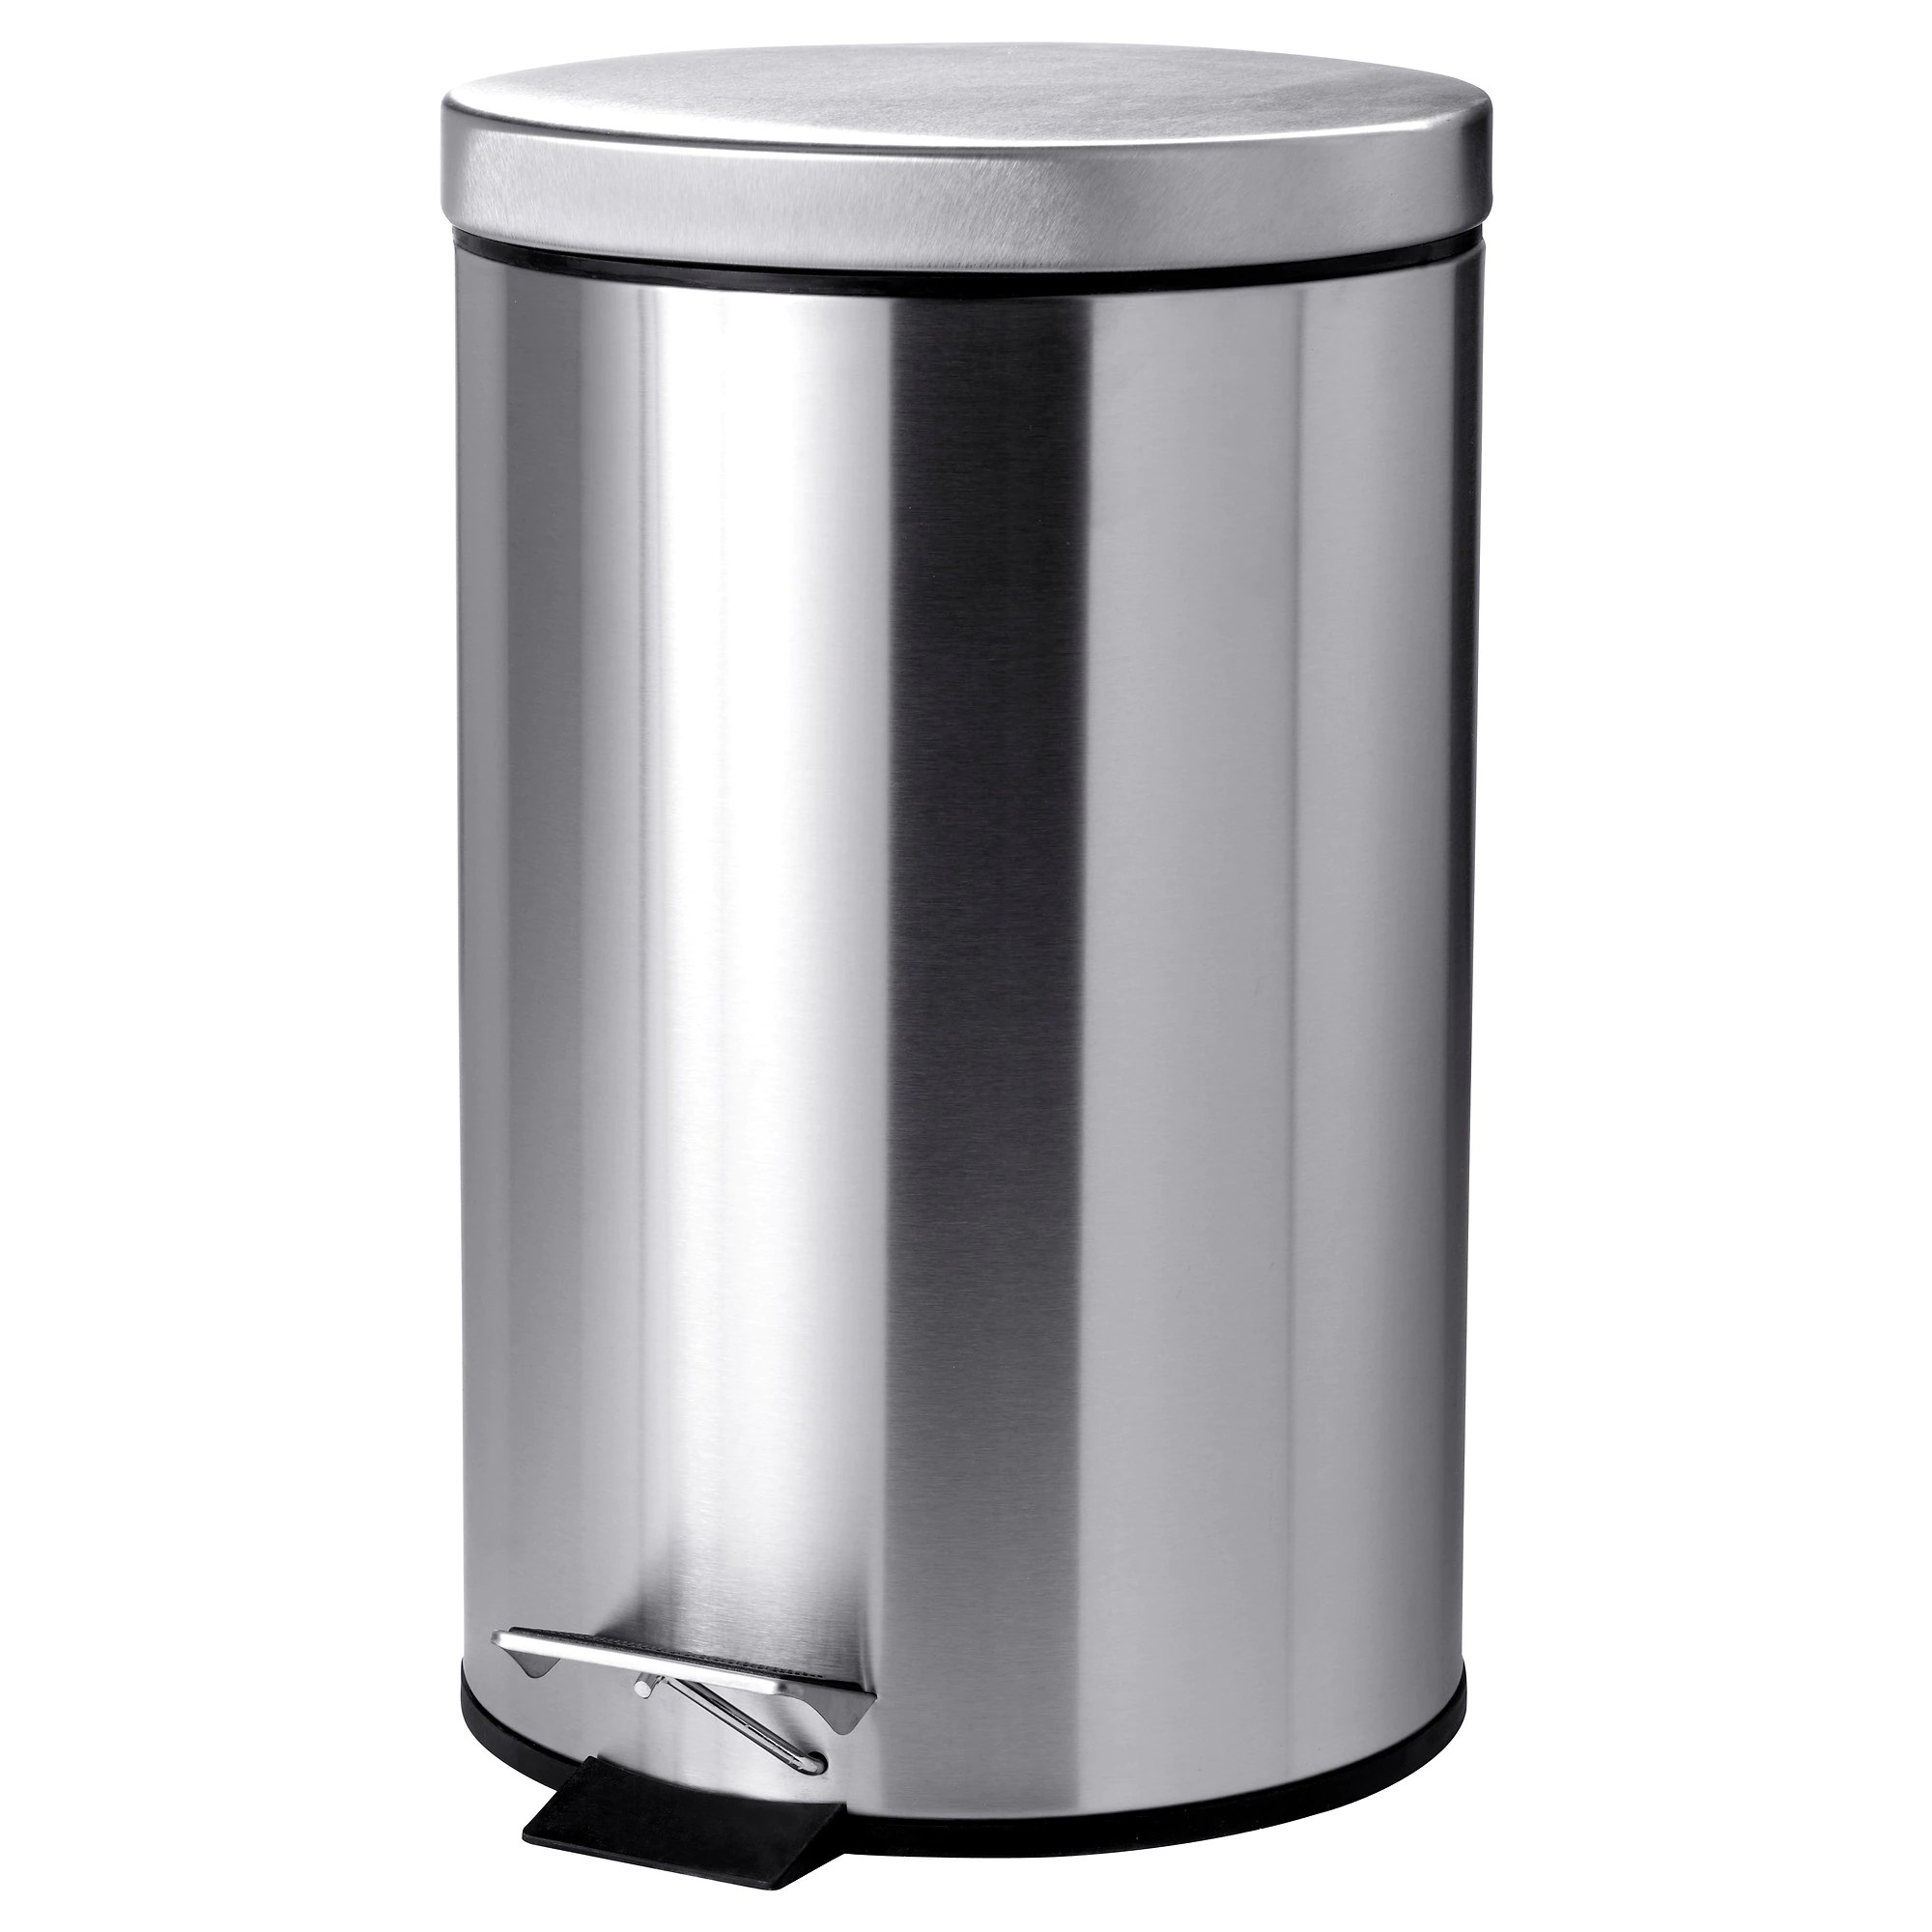 Stainless Steel Recycling Bins Strapats Pedal Bin Stainless Steel